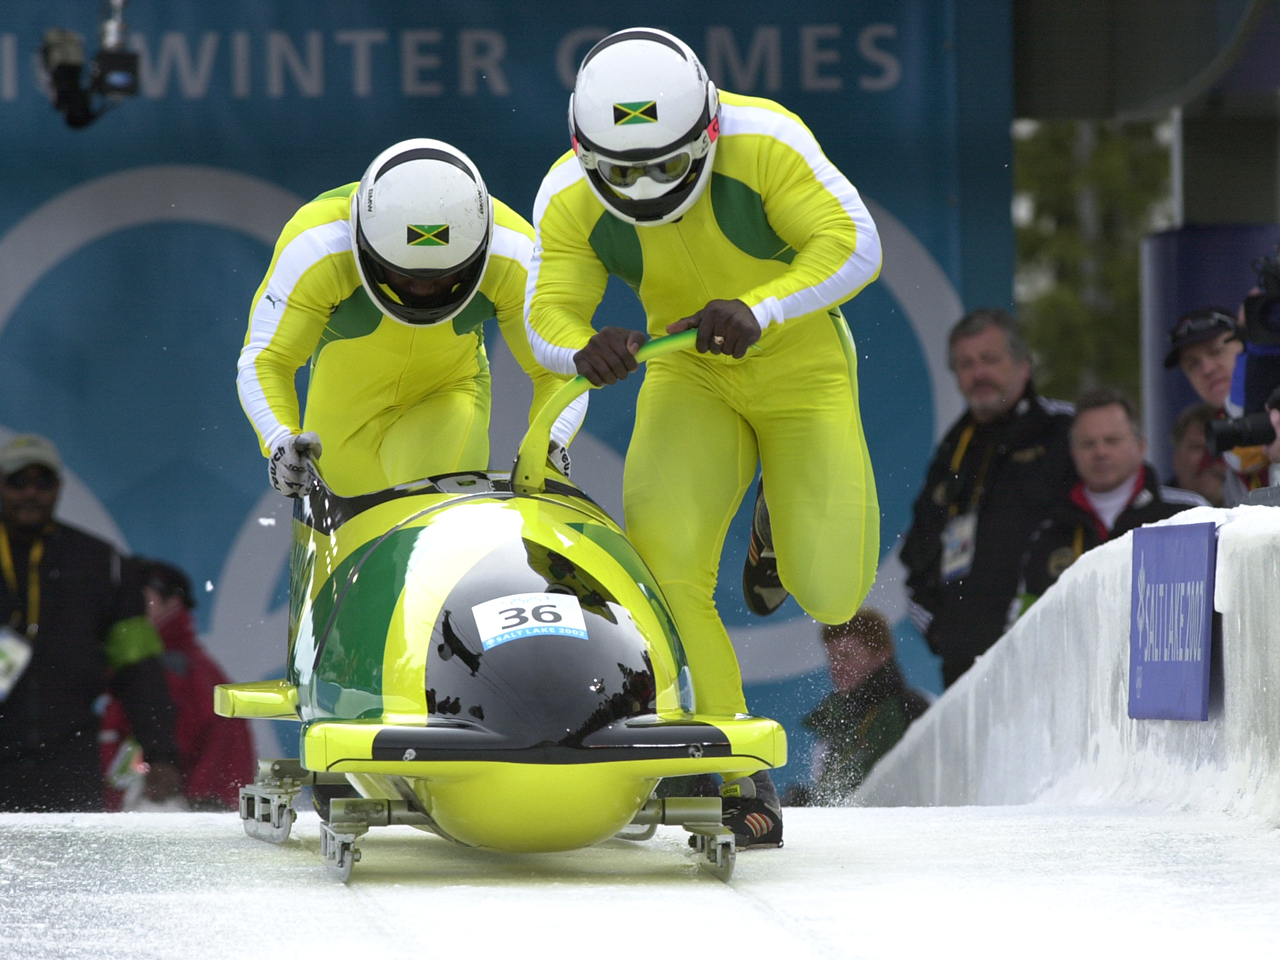 Cool Runnings 2 Jamaican Bobsled Team Aims For Sochi